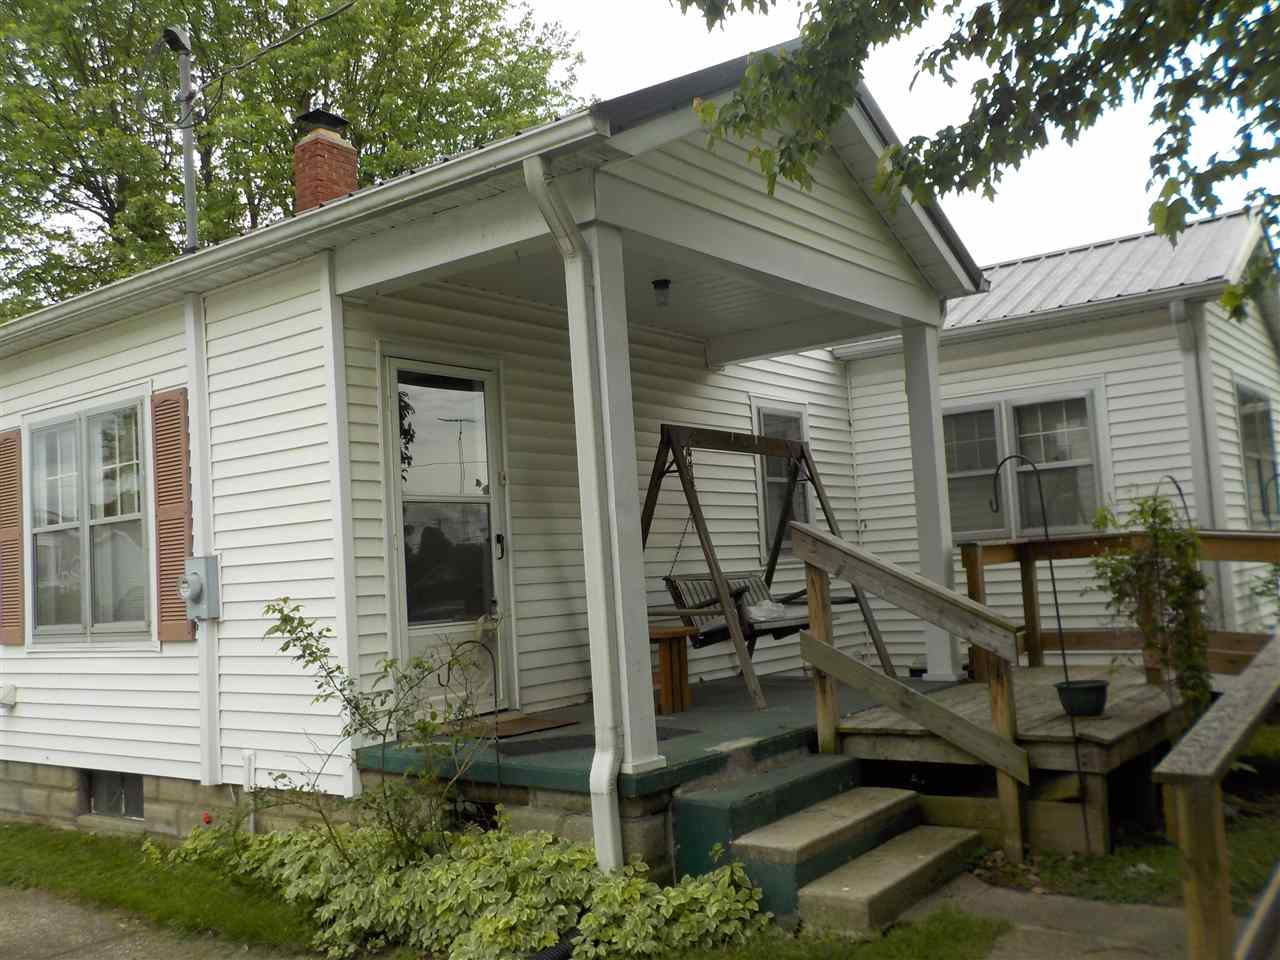 409 Nw Second Street, Washington, IN 47501